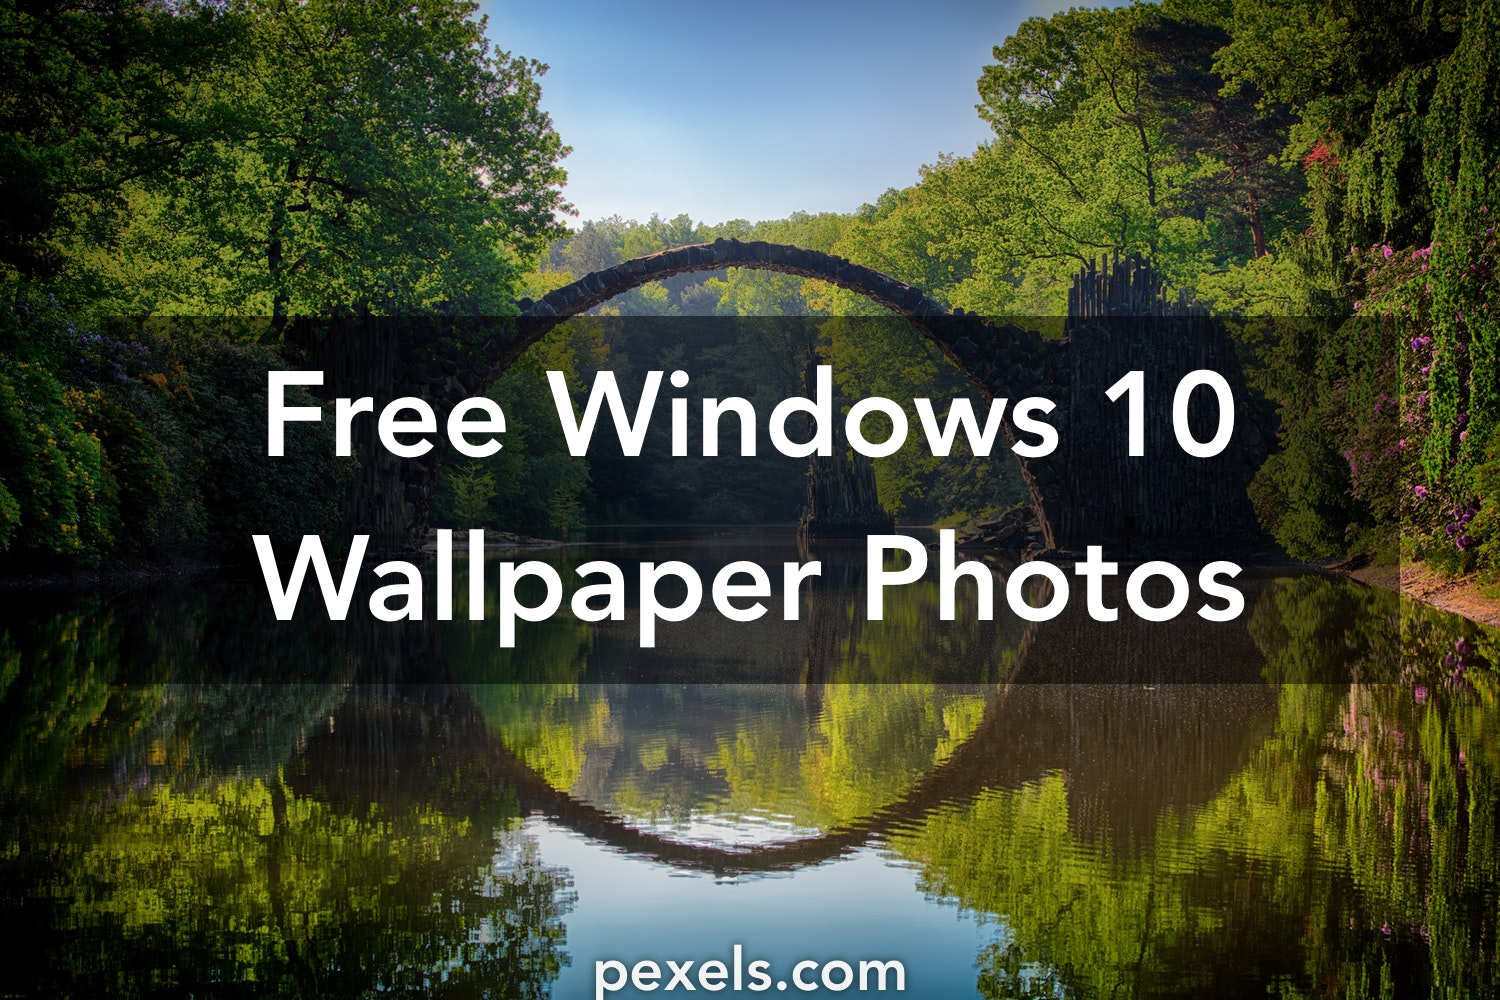 1000 Interesting Windows 10 Wallpaper Photos Pexels Free